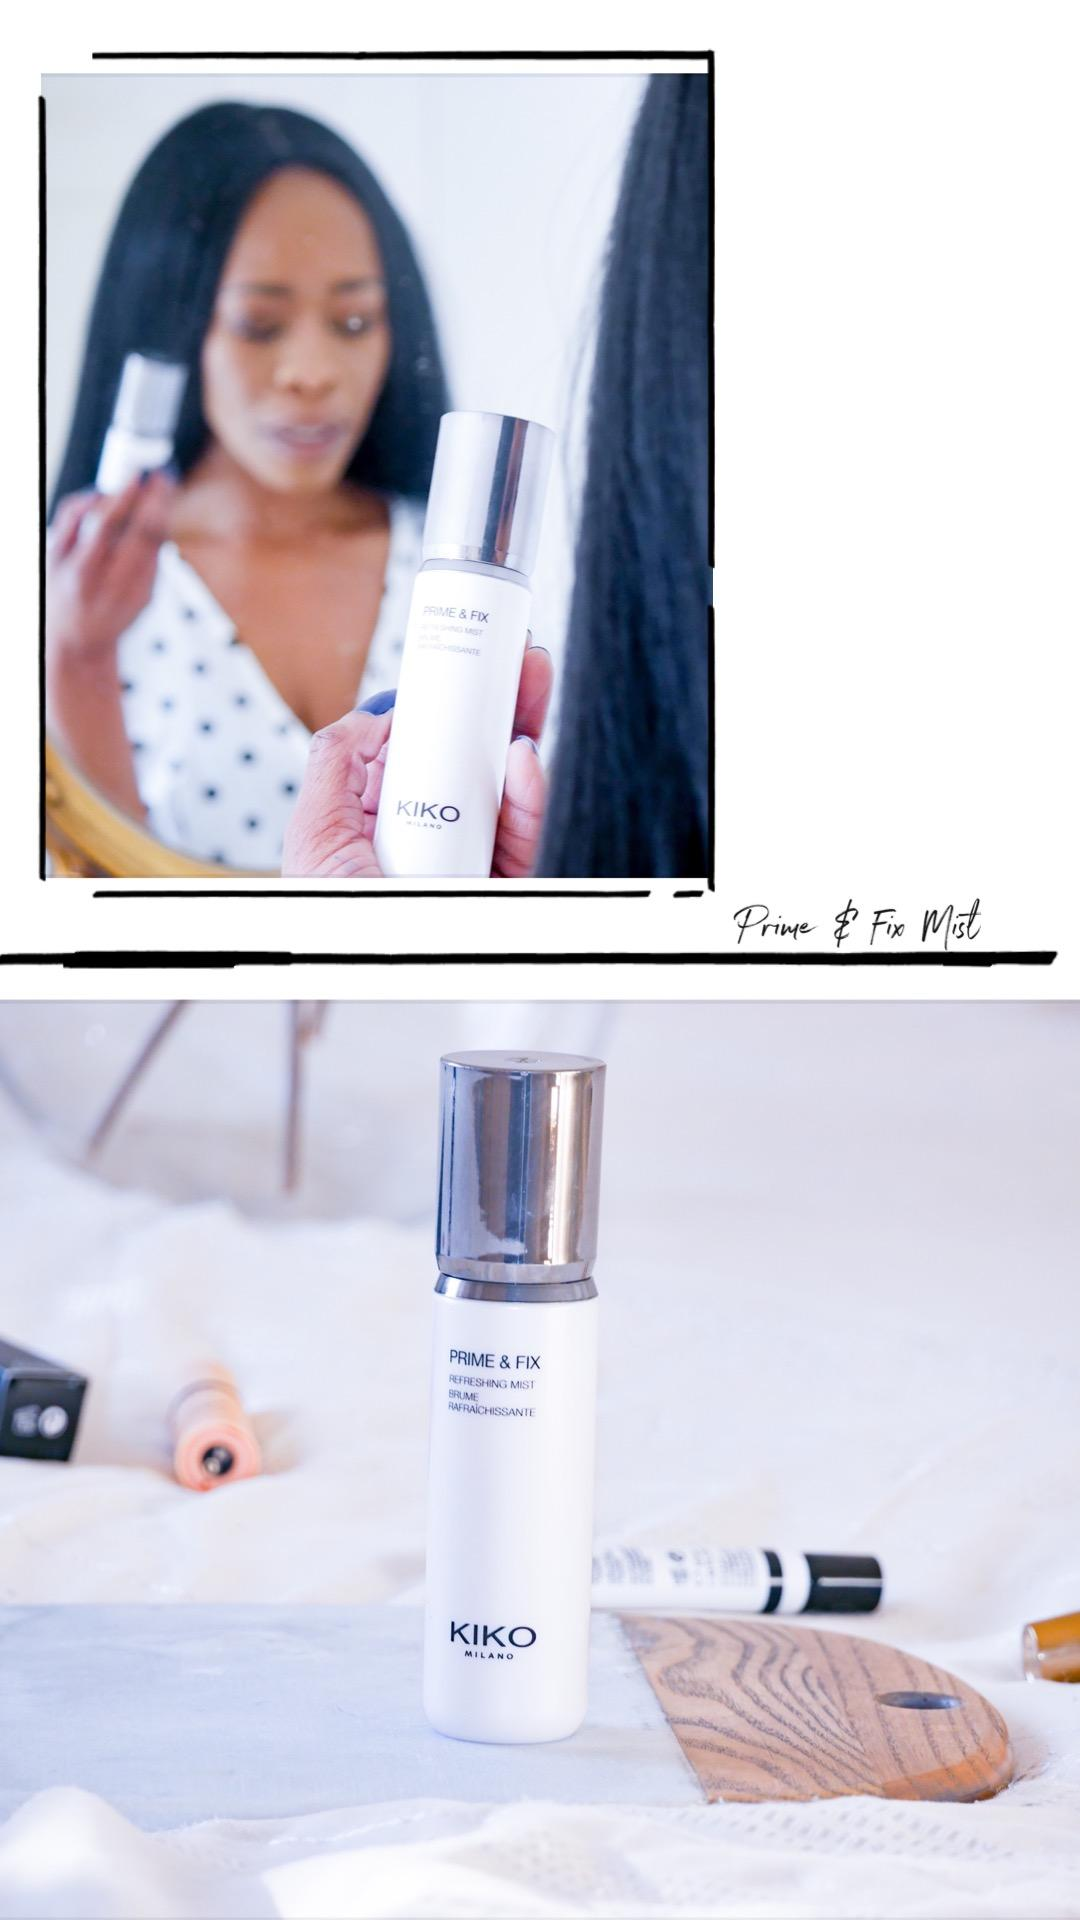 What I bought from KIKO Milano Online| My thoughts on everything I bought - all under £10 including this Prime & Fix mist |If you're looking for cruelty free, affordable makeup and beauty, then you'll definitely be interested| www.kittyandb.com #KIKOTrendsetters #settingspray #beautyreviews #crueltyfree #beautyblog